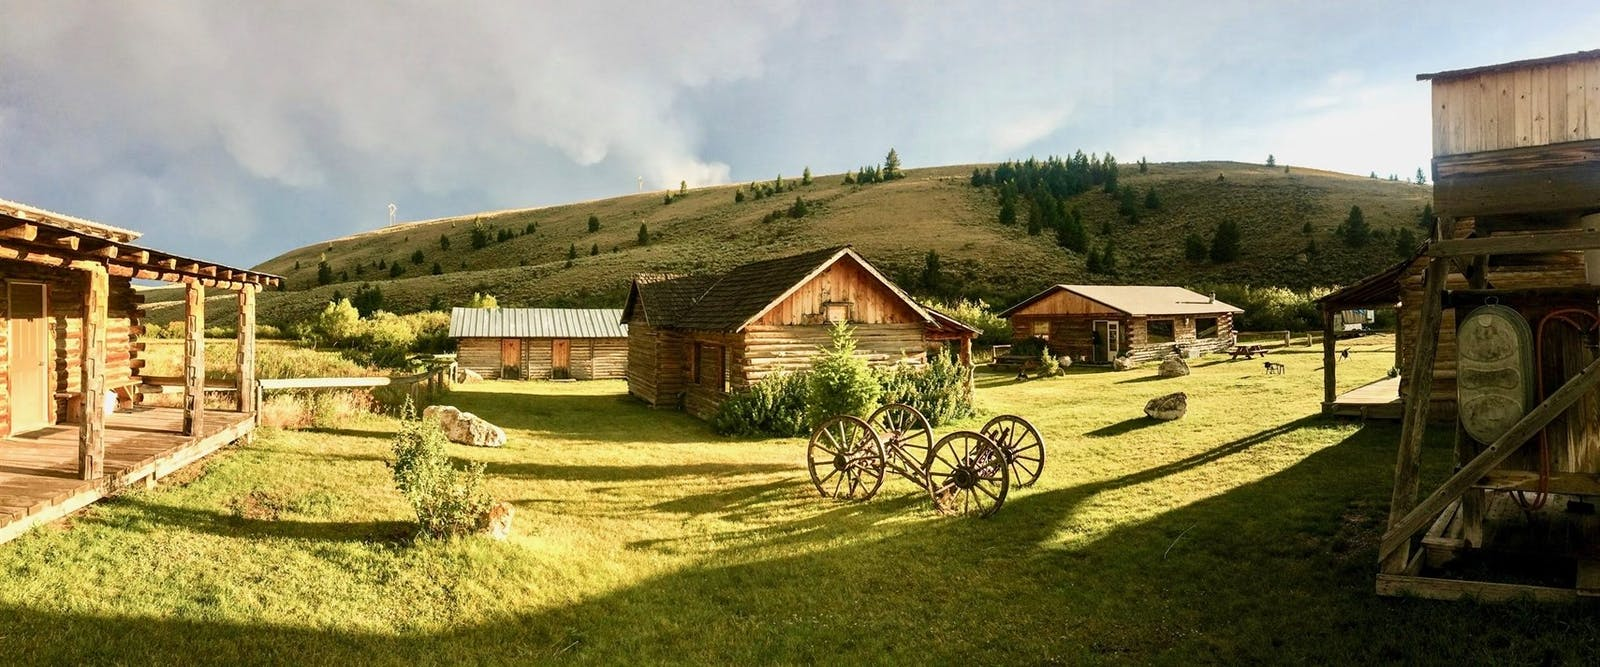 The Ranch at Medicine Lodge Horse Drives at Silver Spur Ranch